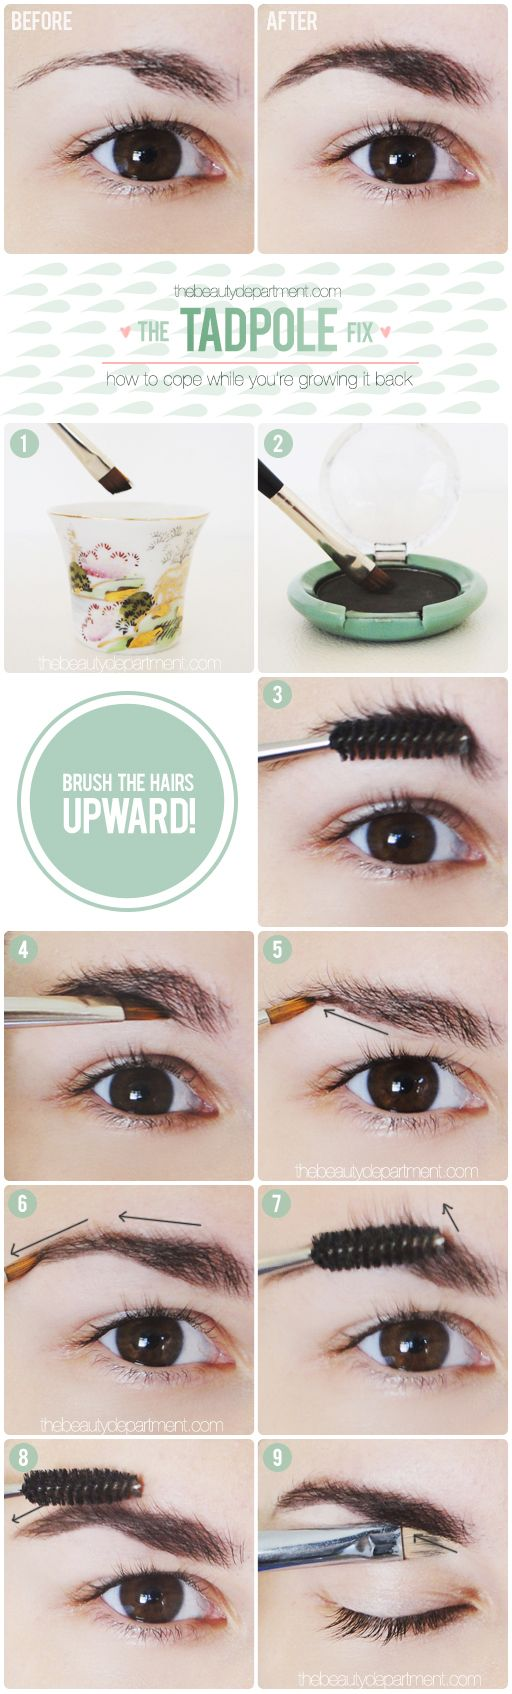 how to grow your eyebrows in 2 days